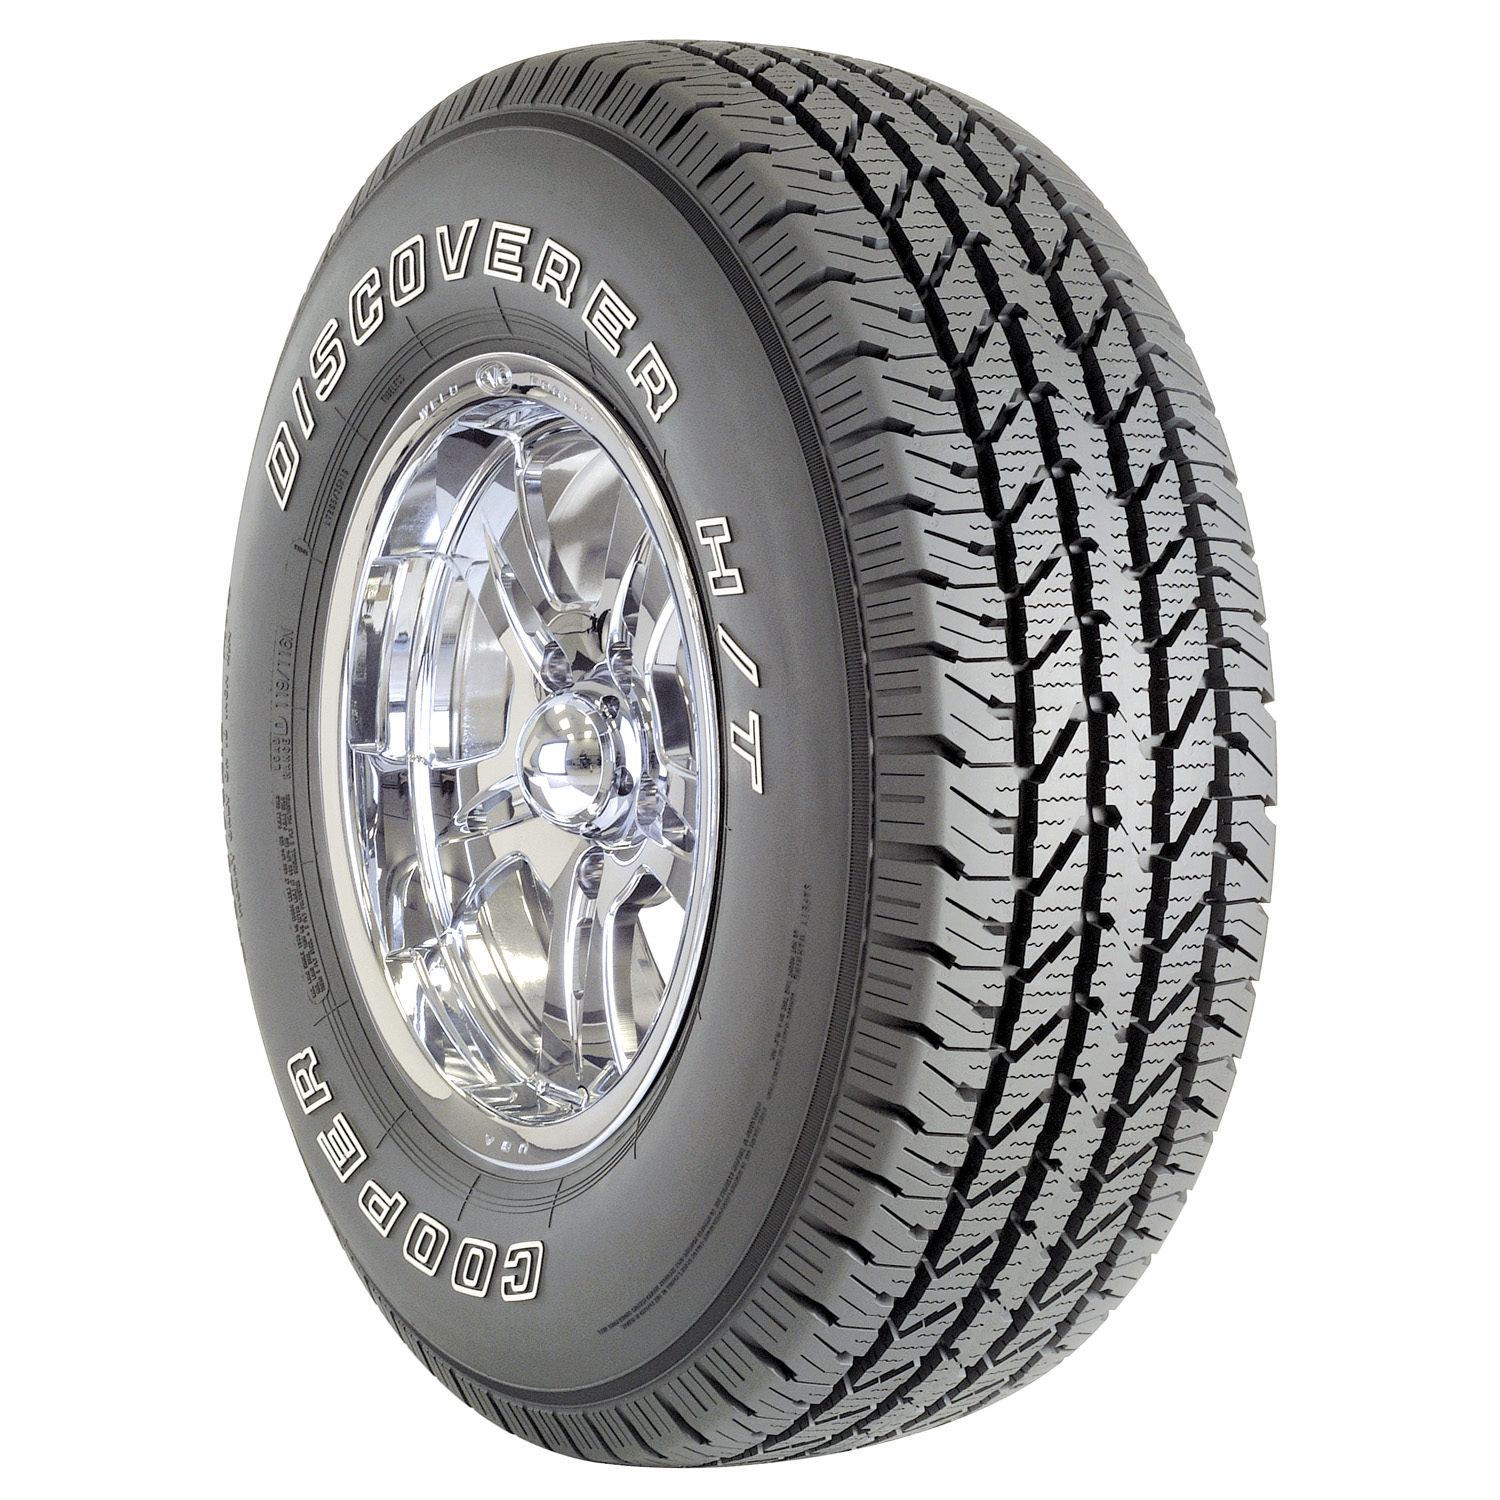 Discoverer HT - P235/70R15 102S OWL - All Season Tire